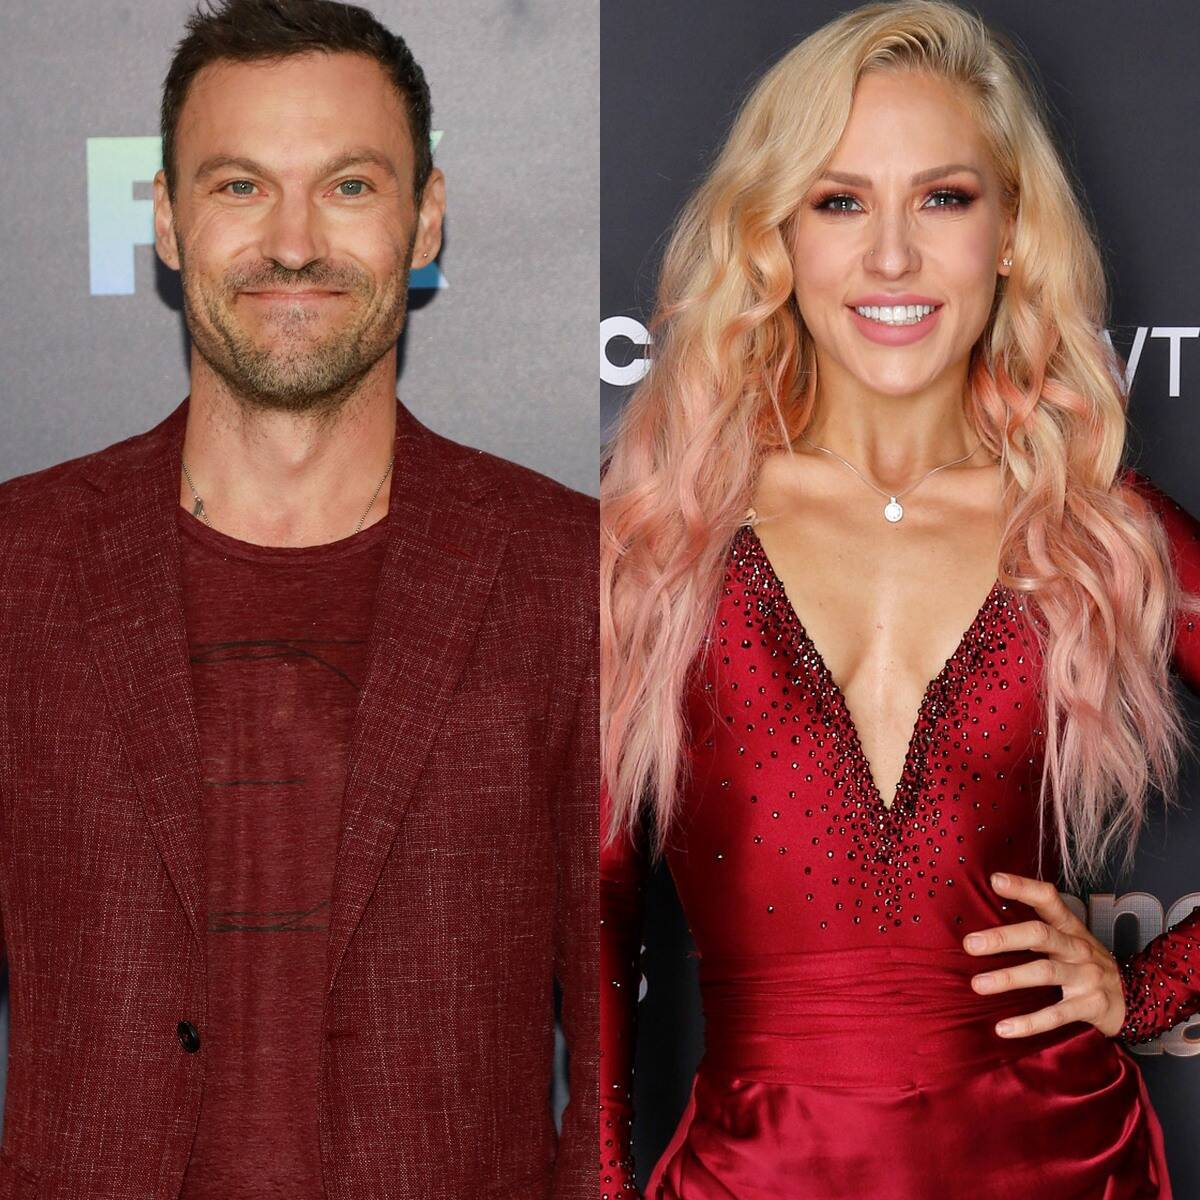 brian-austin-green-and-sharna-burgess-possibilities-are-endless-for-their-relationship-source-says-details